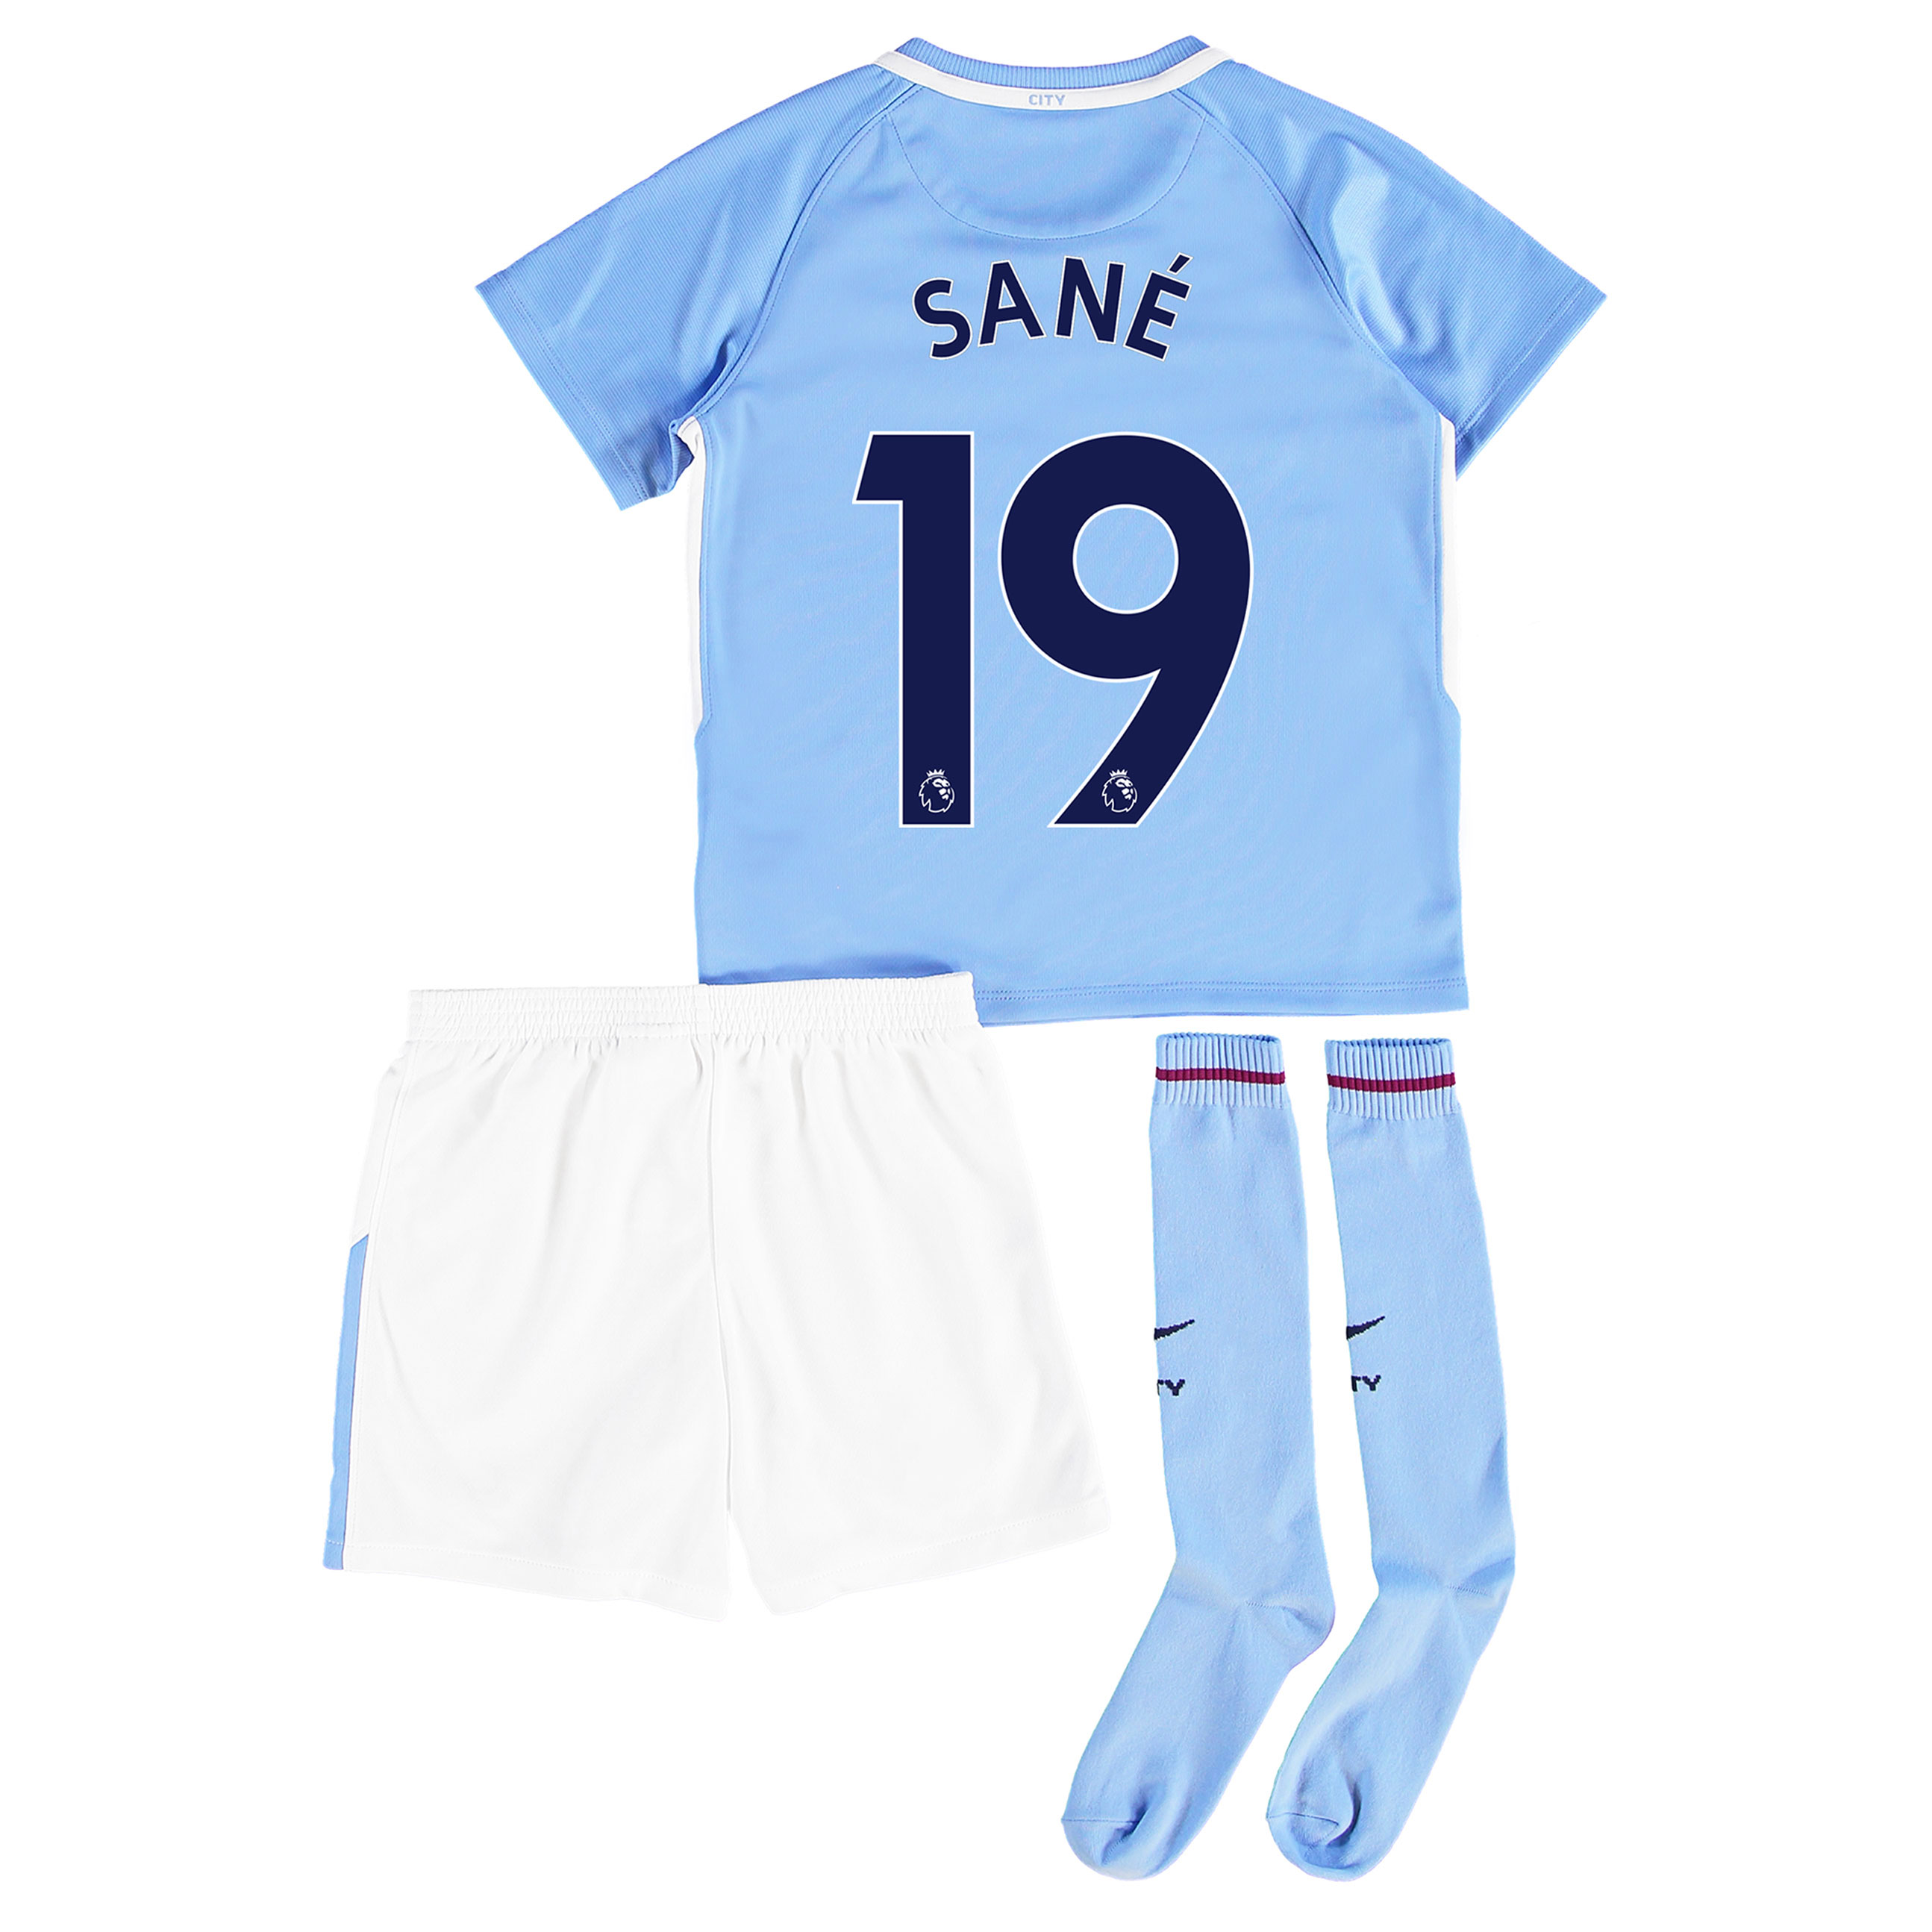 Manchester City Home Stadium Kit 2017-18 - Little Kids with San?® 19 pr